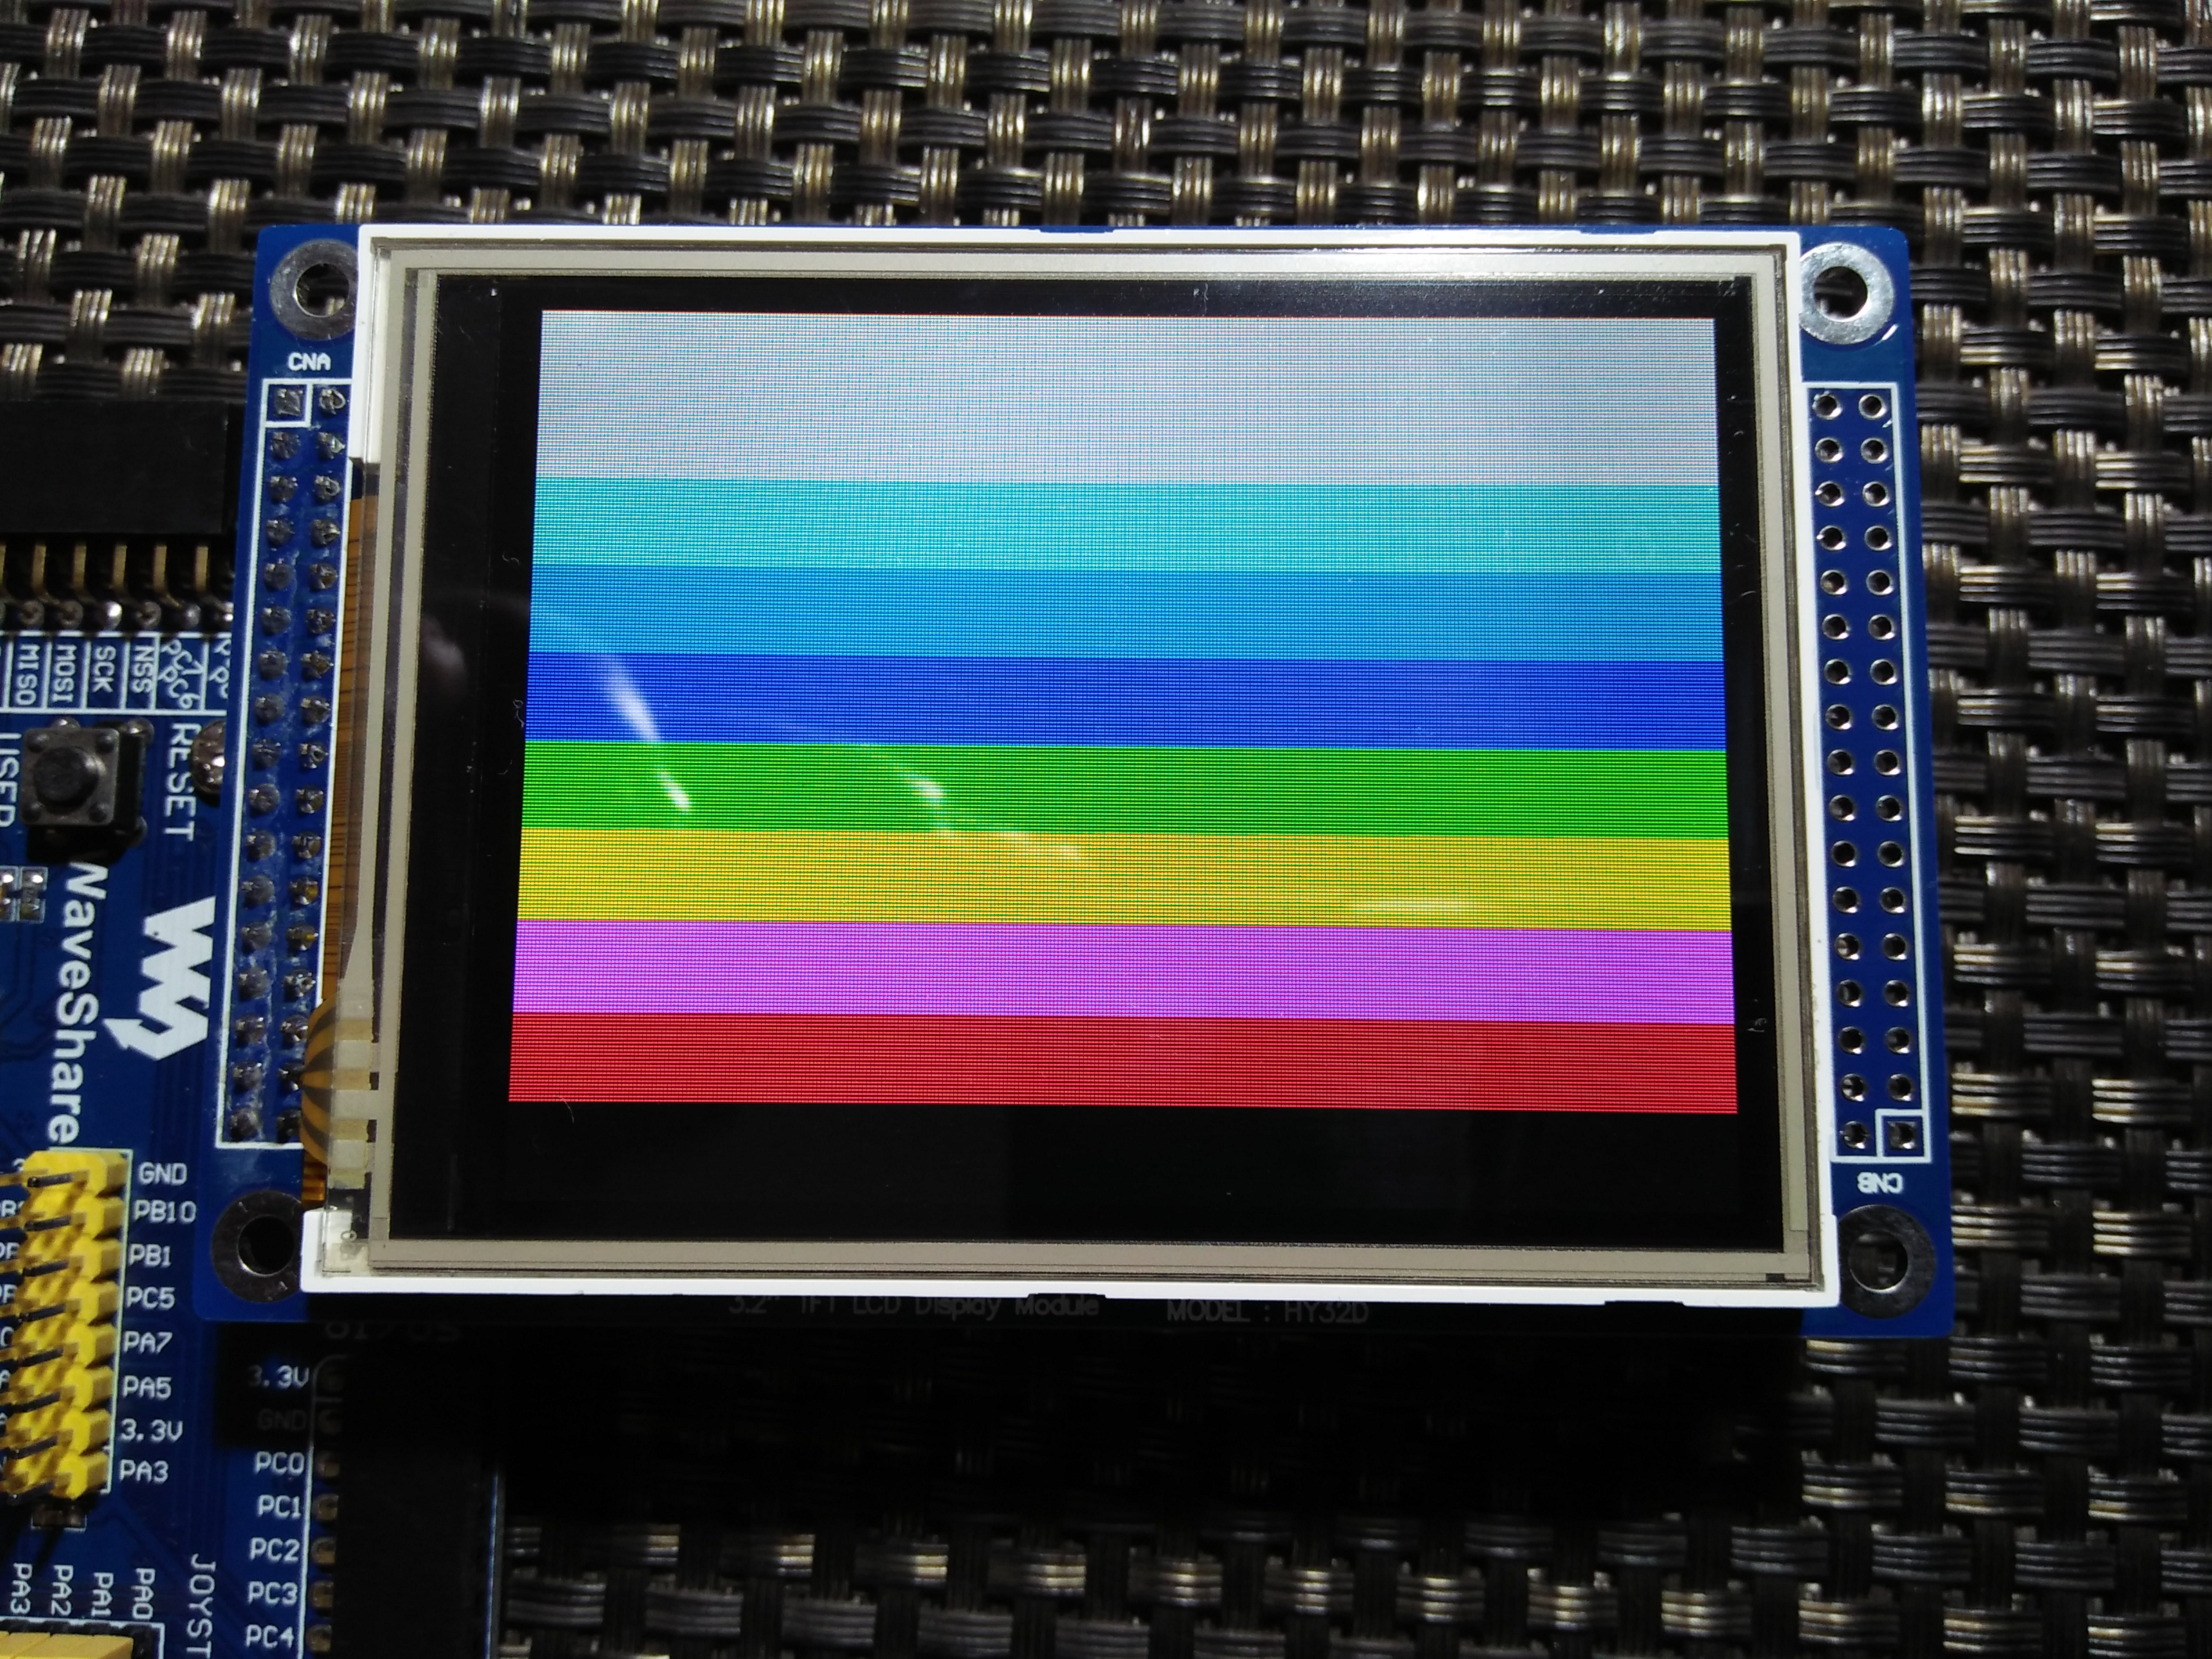 LibStock - SSD1289 TFT Touch Display Library + Demo